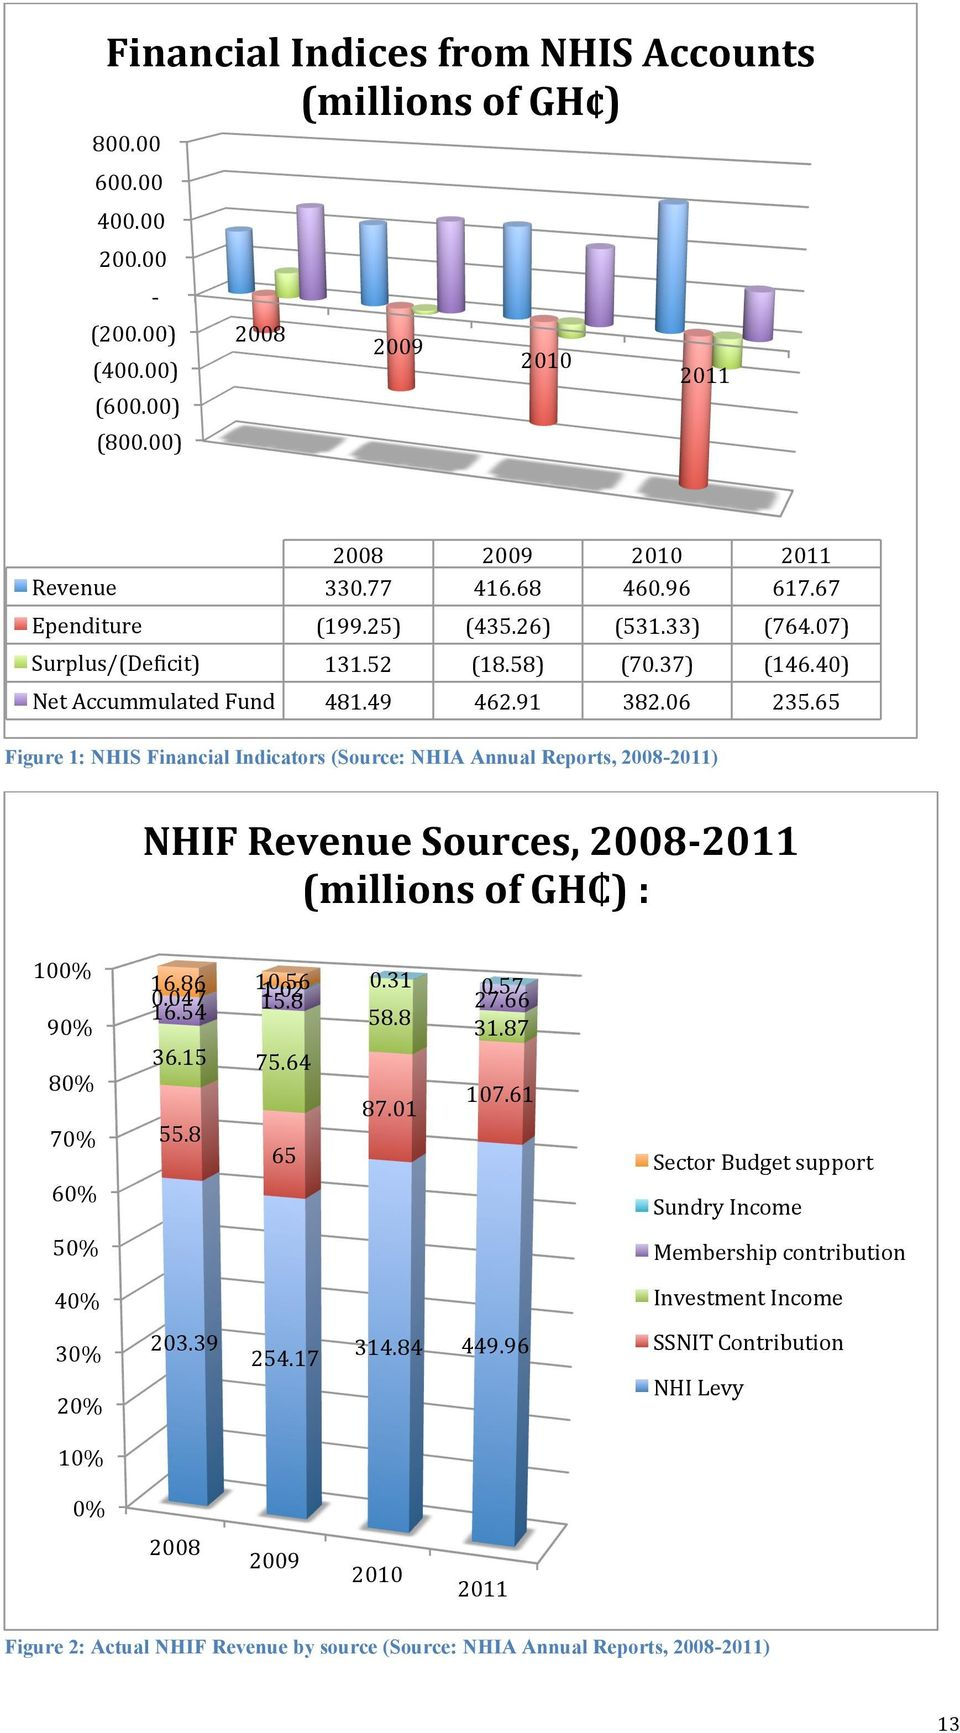 65 Figure 1: NHIS Financial Indicators (Source: NHIA Annual Reports, 2008-2011) NHIF Revenue Sources, 2008-2011 (millions of GH ) : 100% 90% 80% 70% 60% 50% 16.86 10.56 0.047 16.54 15.8 1.02 0.31 0.